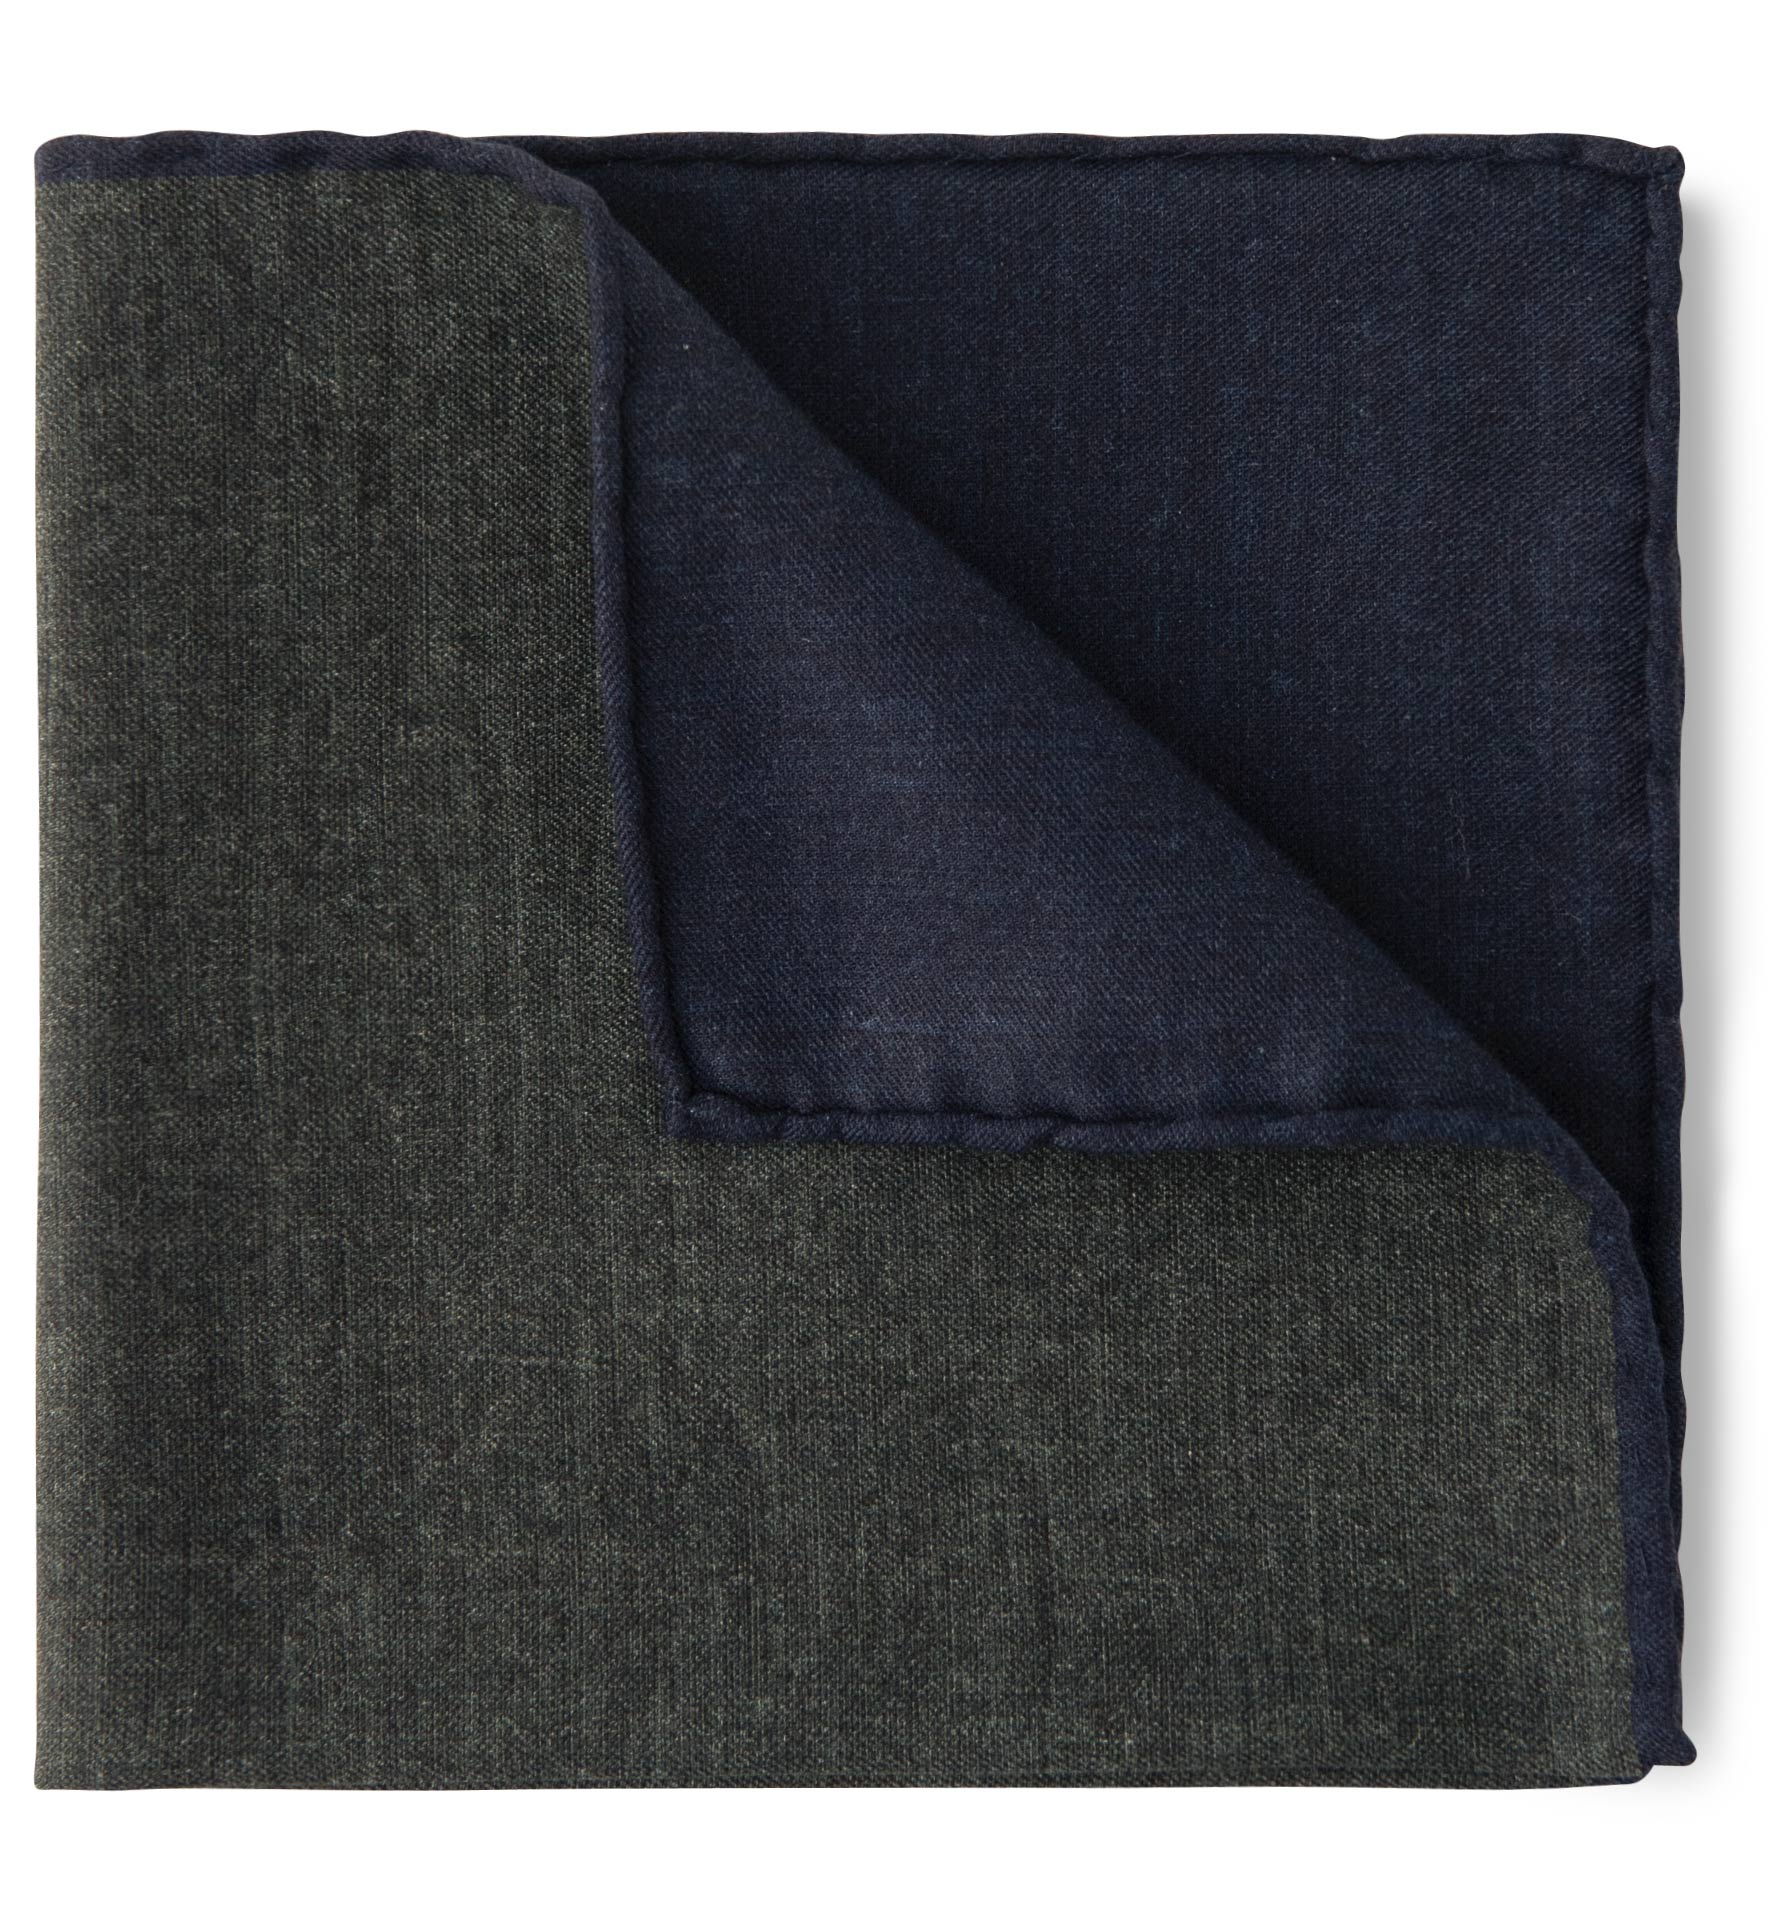 Zoom Image of Green and Navy Cotton and Wool Pocket Square